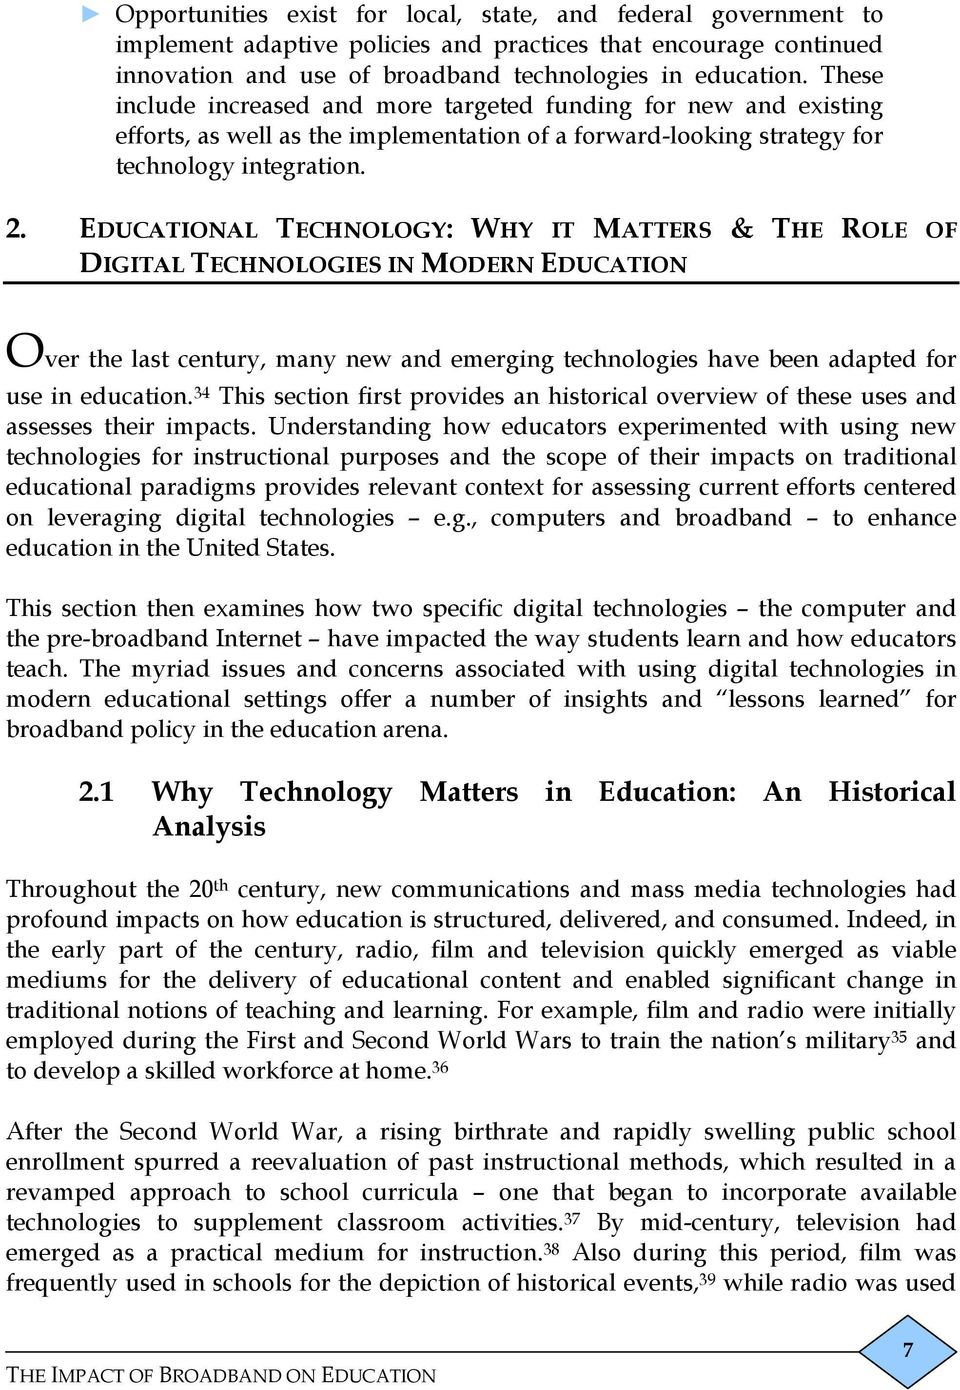 EDUCATIONAL TECHNOLOGY: WHY IT MATTERS & THE ROLE OF DIGITAL TECHNOLOGIES IN MODERN EDUCATION Over the last century, many new and emerging technologies have been adapted for use in education.